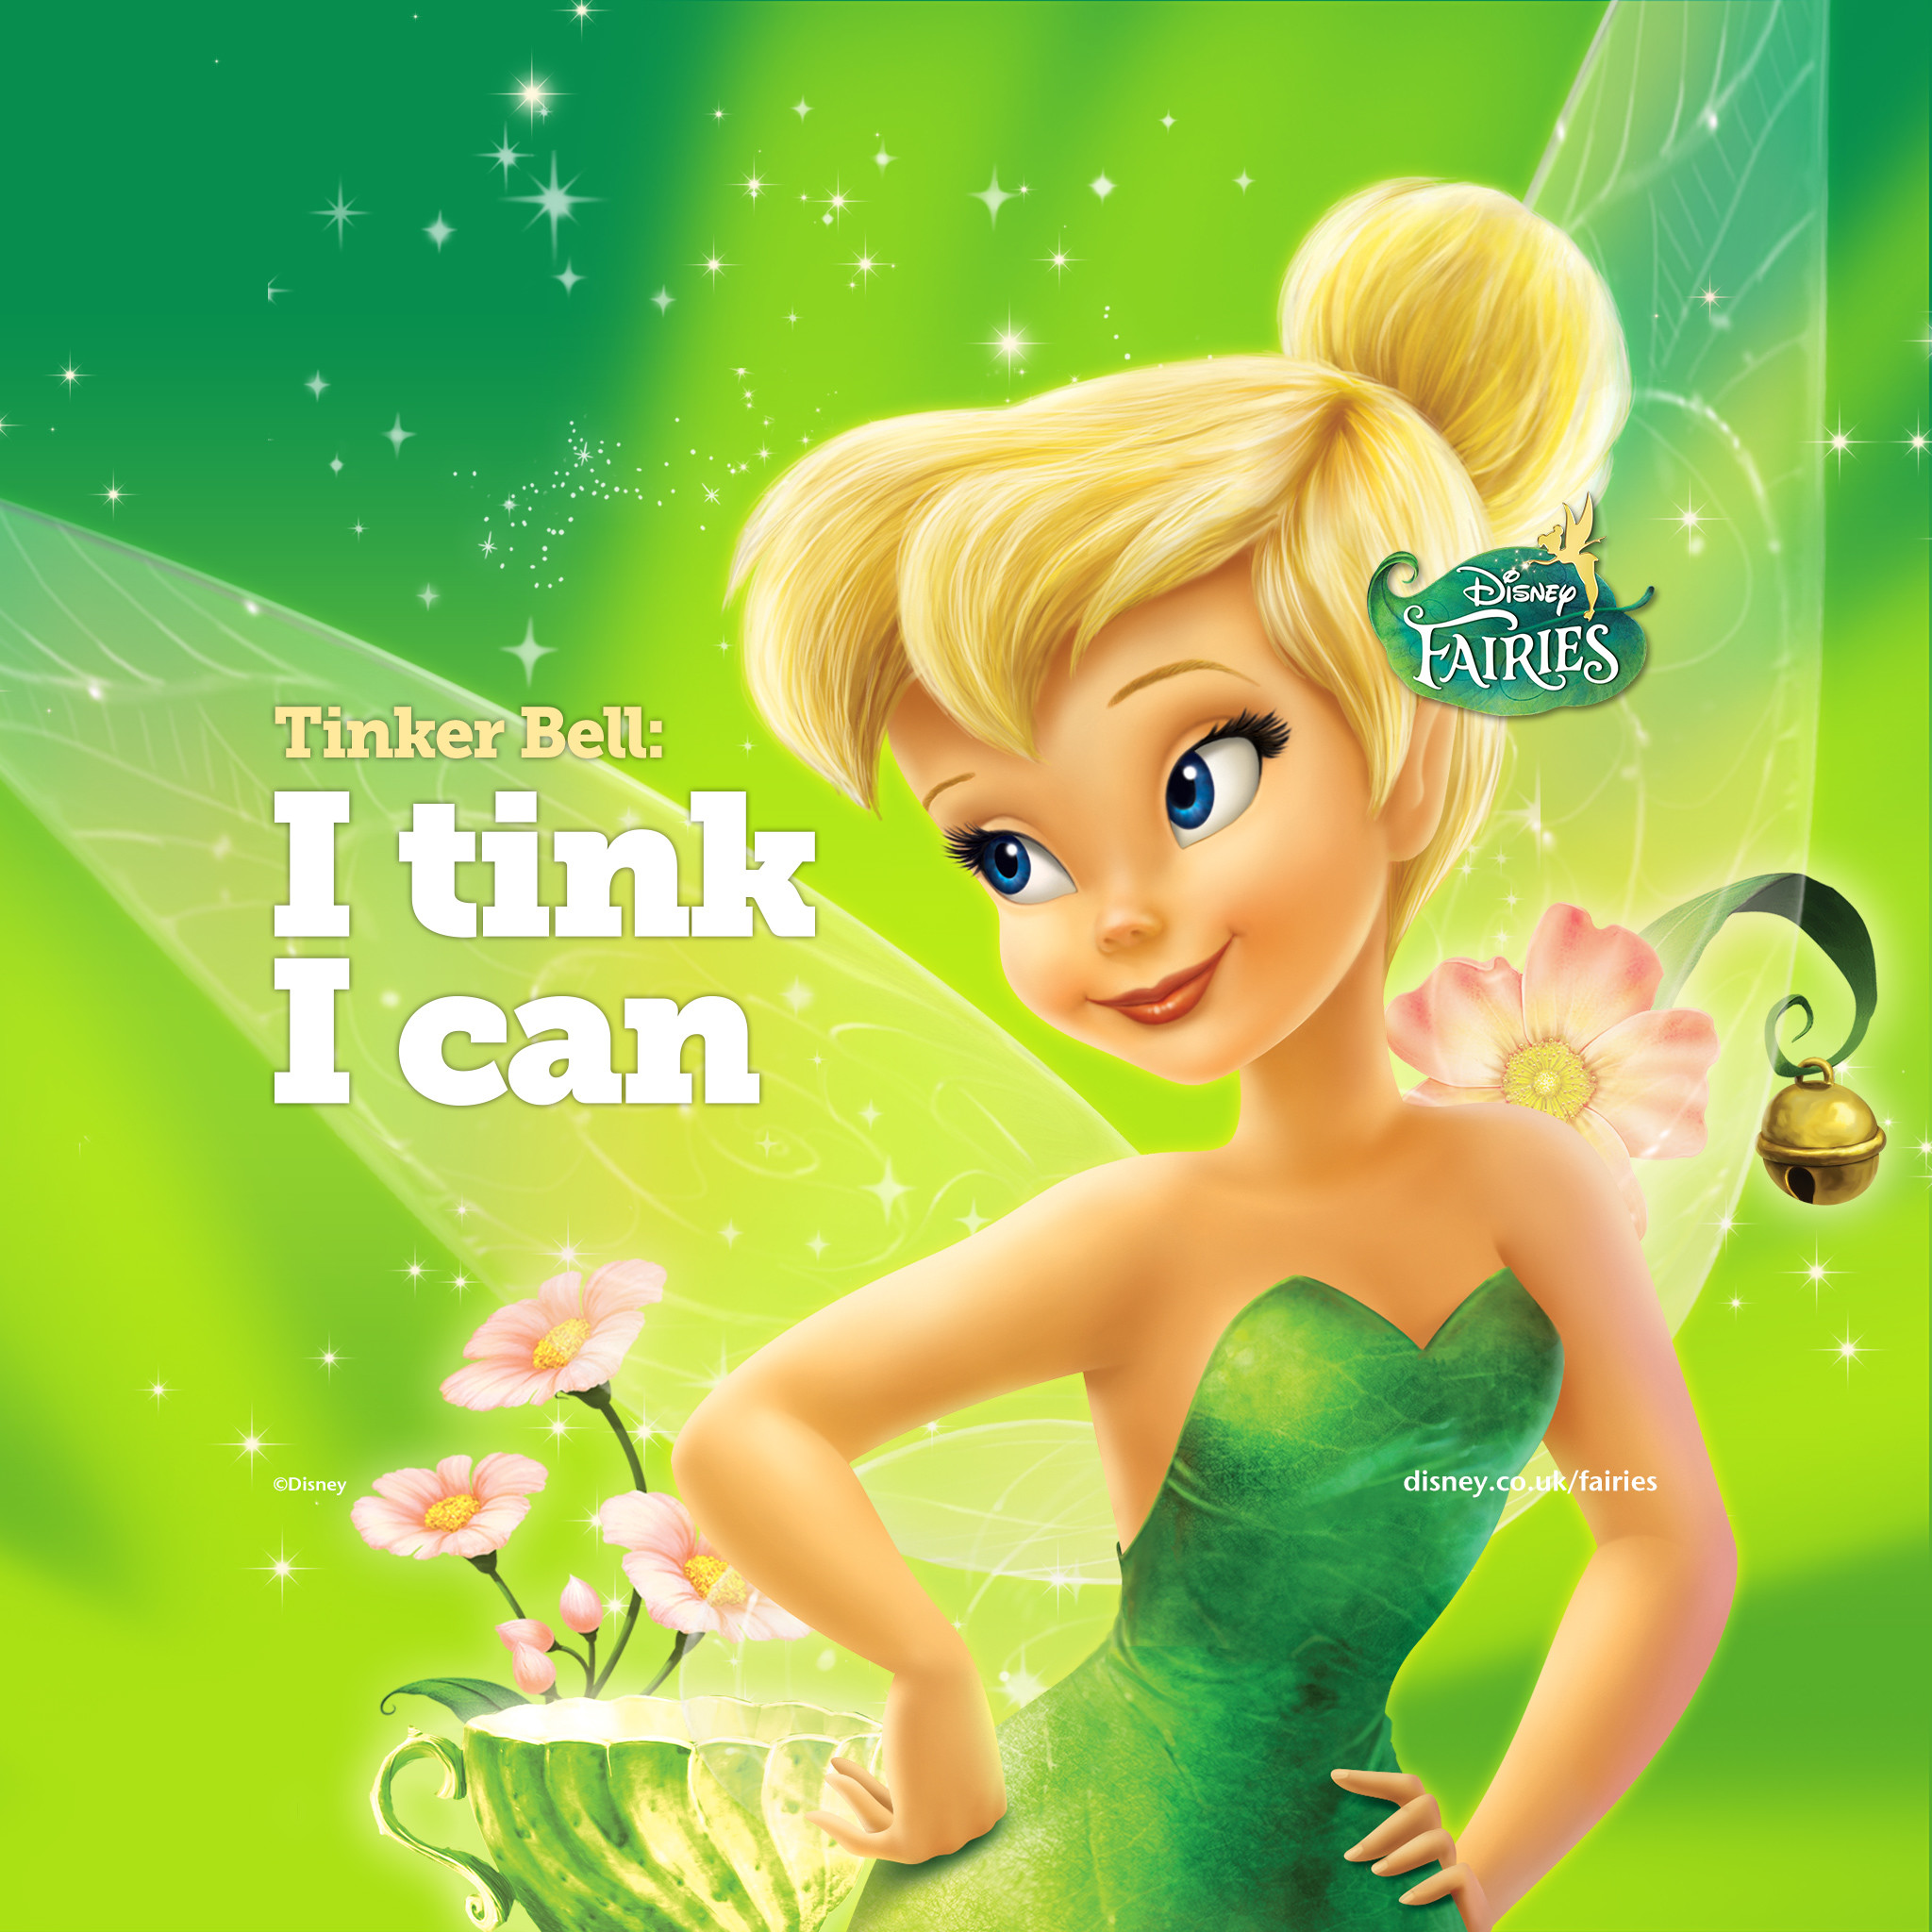 Tinkerbell Live Wallpaper (65+ images)